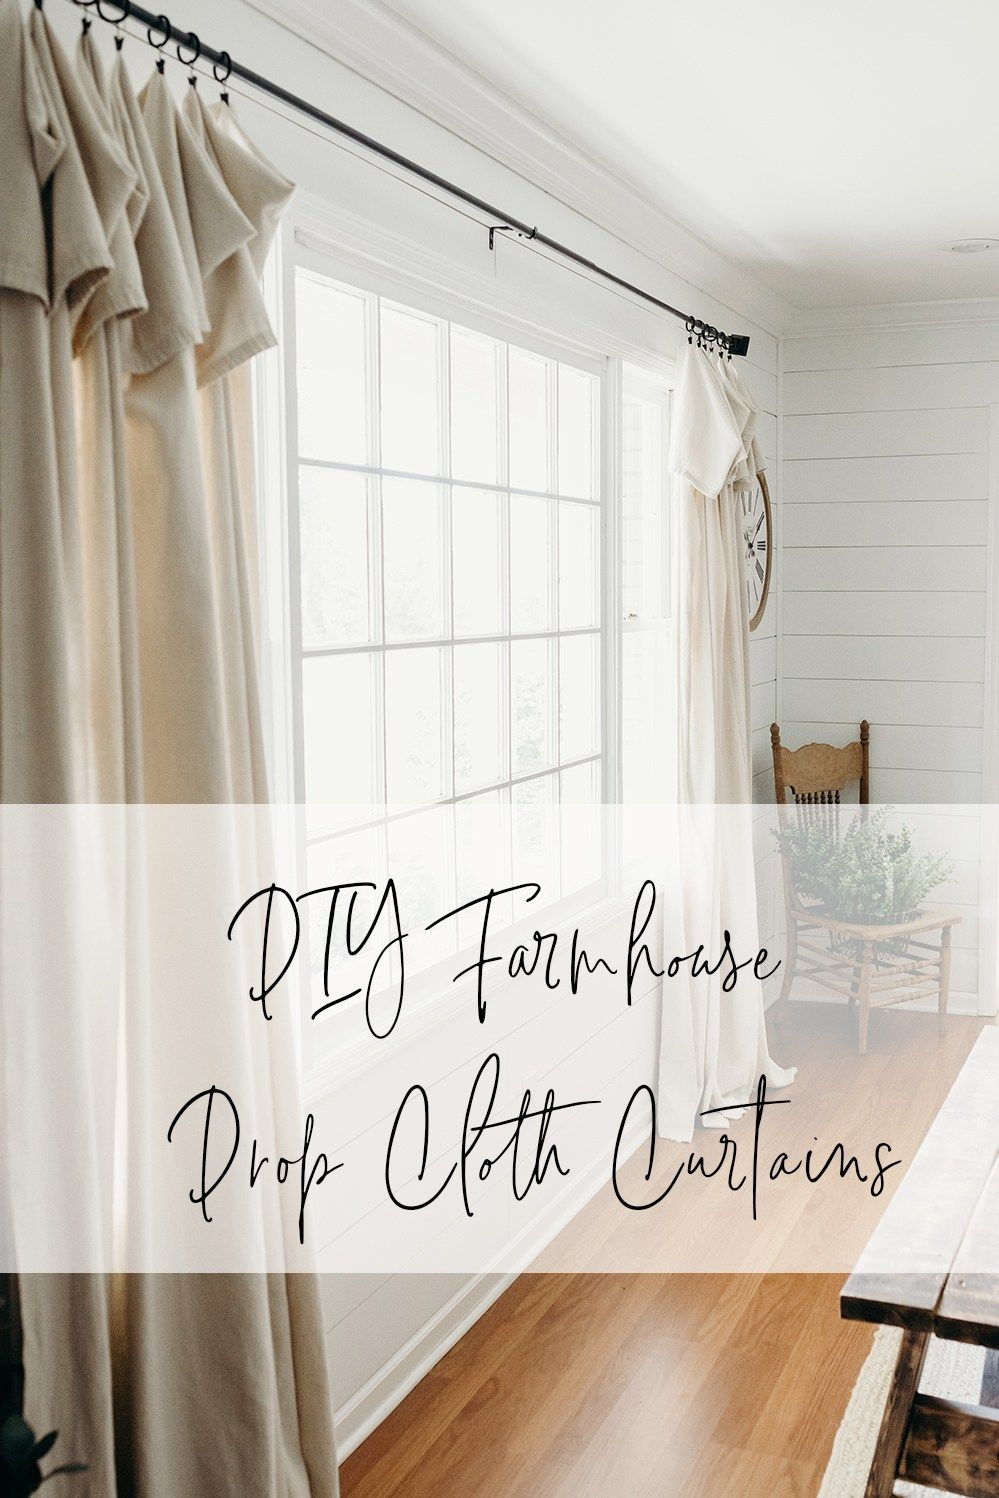 DIY Farmhouse Drop Cloth Curtains Curtains living room